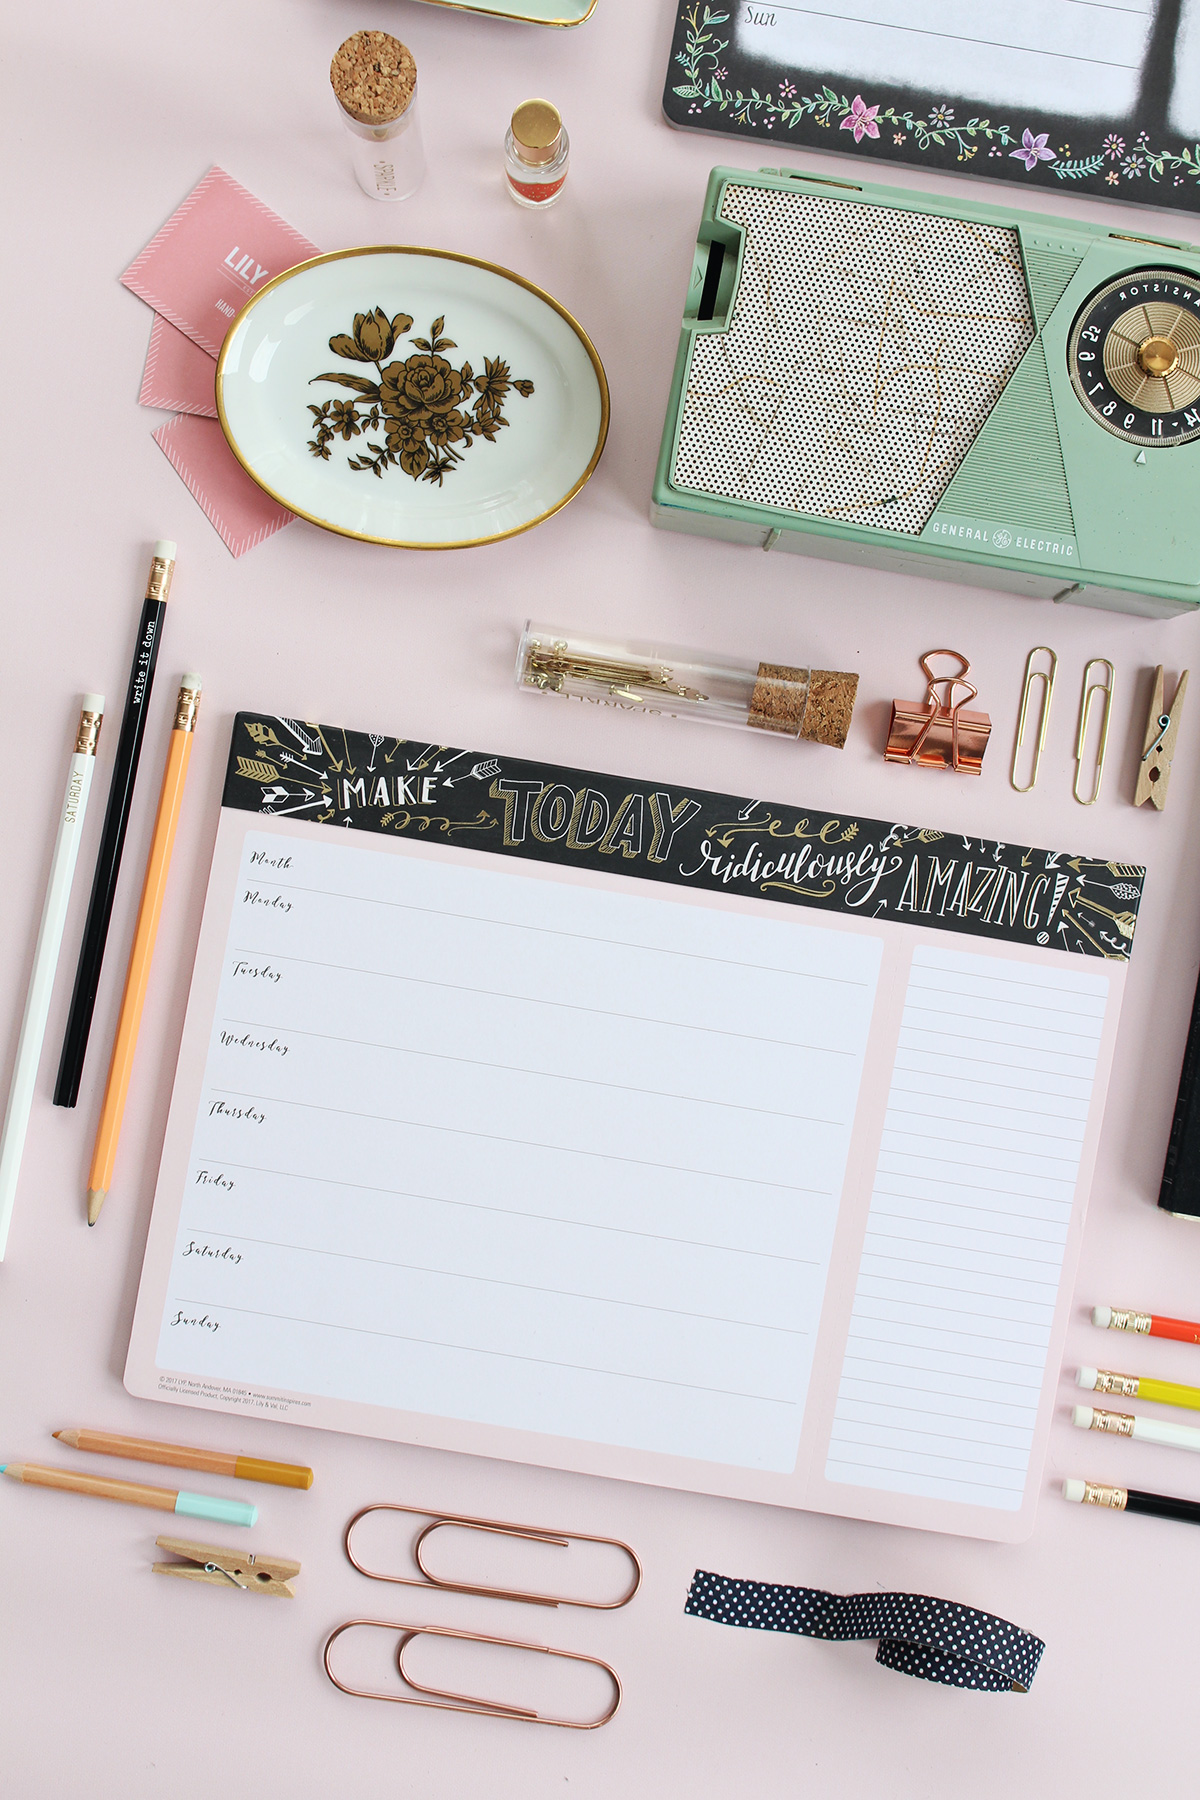 A new weekly planner pad by Lily & Val. Make today ridiculously amazing!